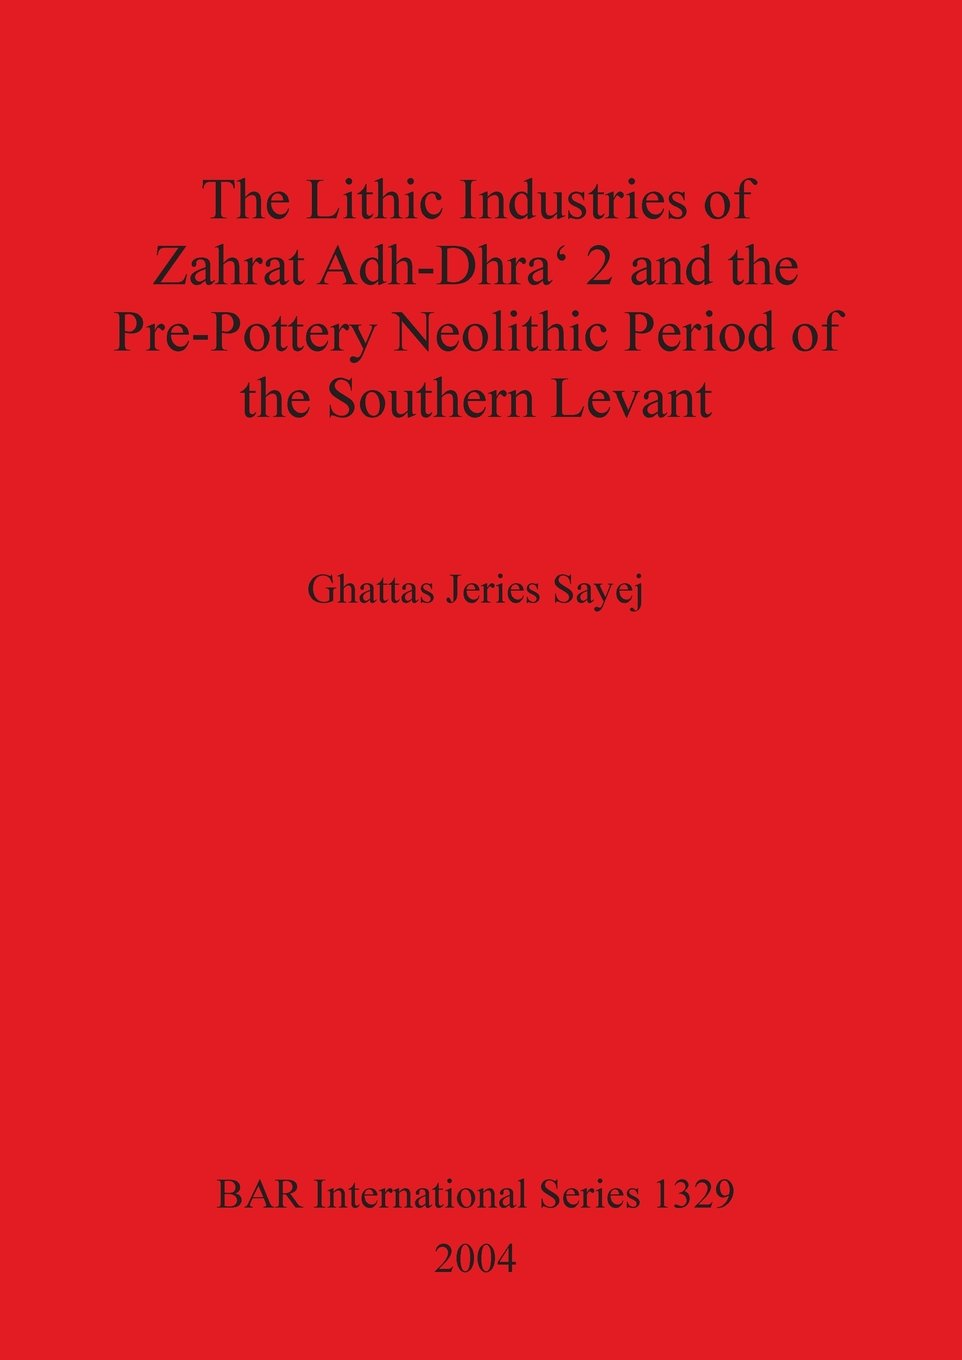 Download The Lithic Industries of Zahrat Adh-Dhra `2 and the Pre-Pottery Neolithic Period of the Southern Levant (BAR International Series) pdf